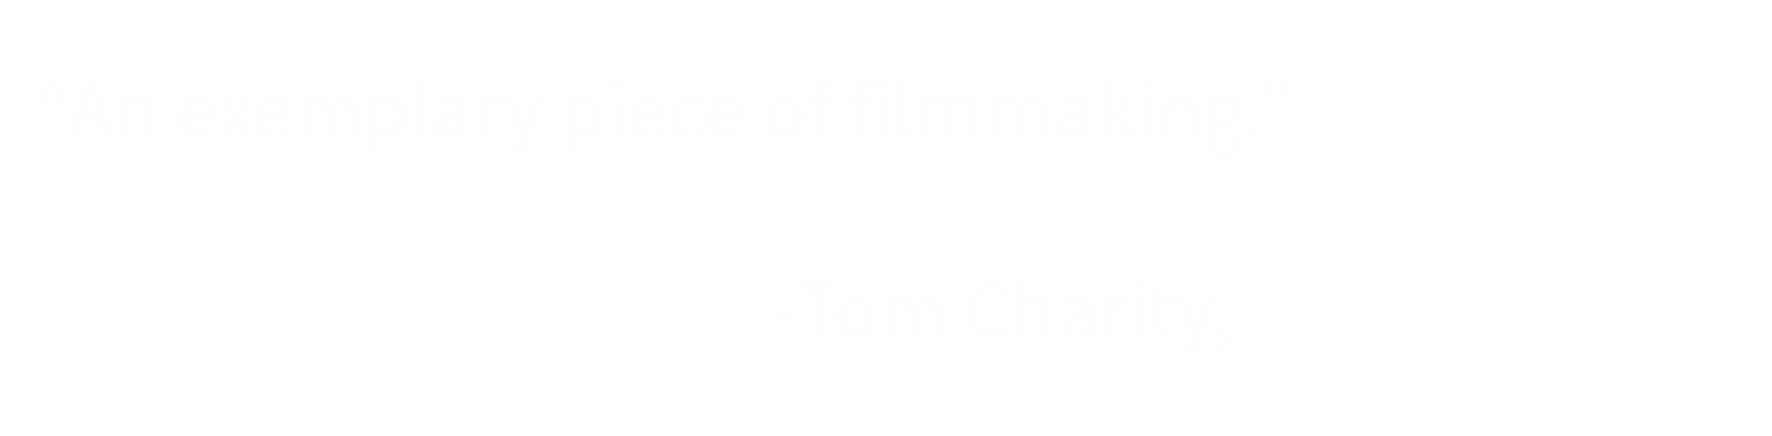 TomCharity_Quote.png